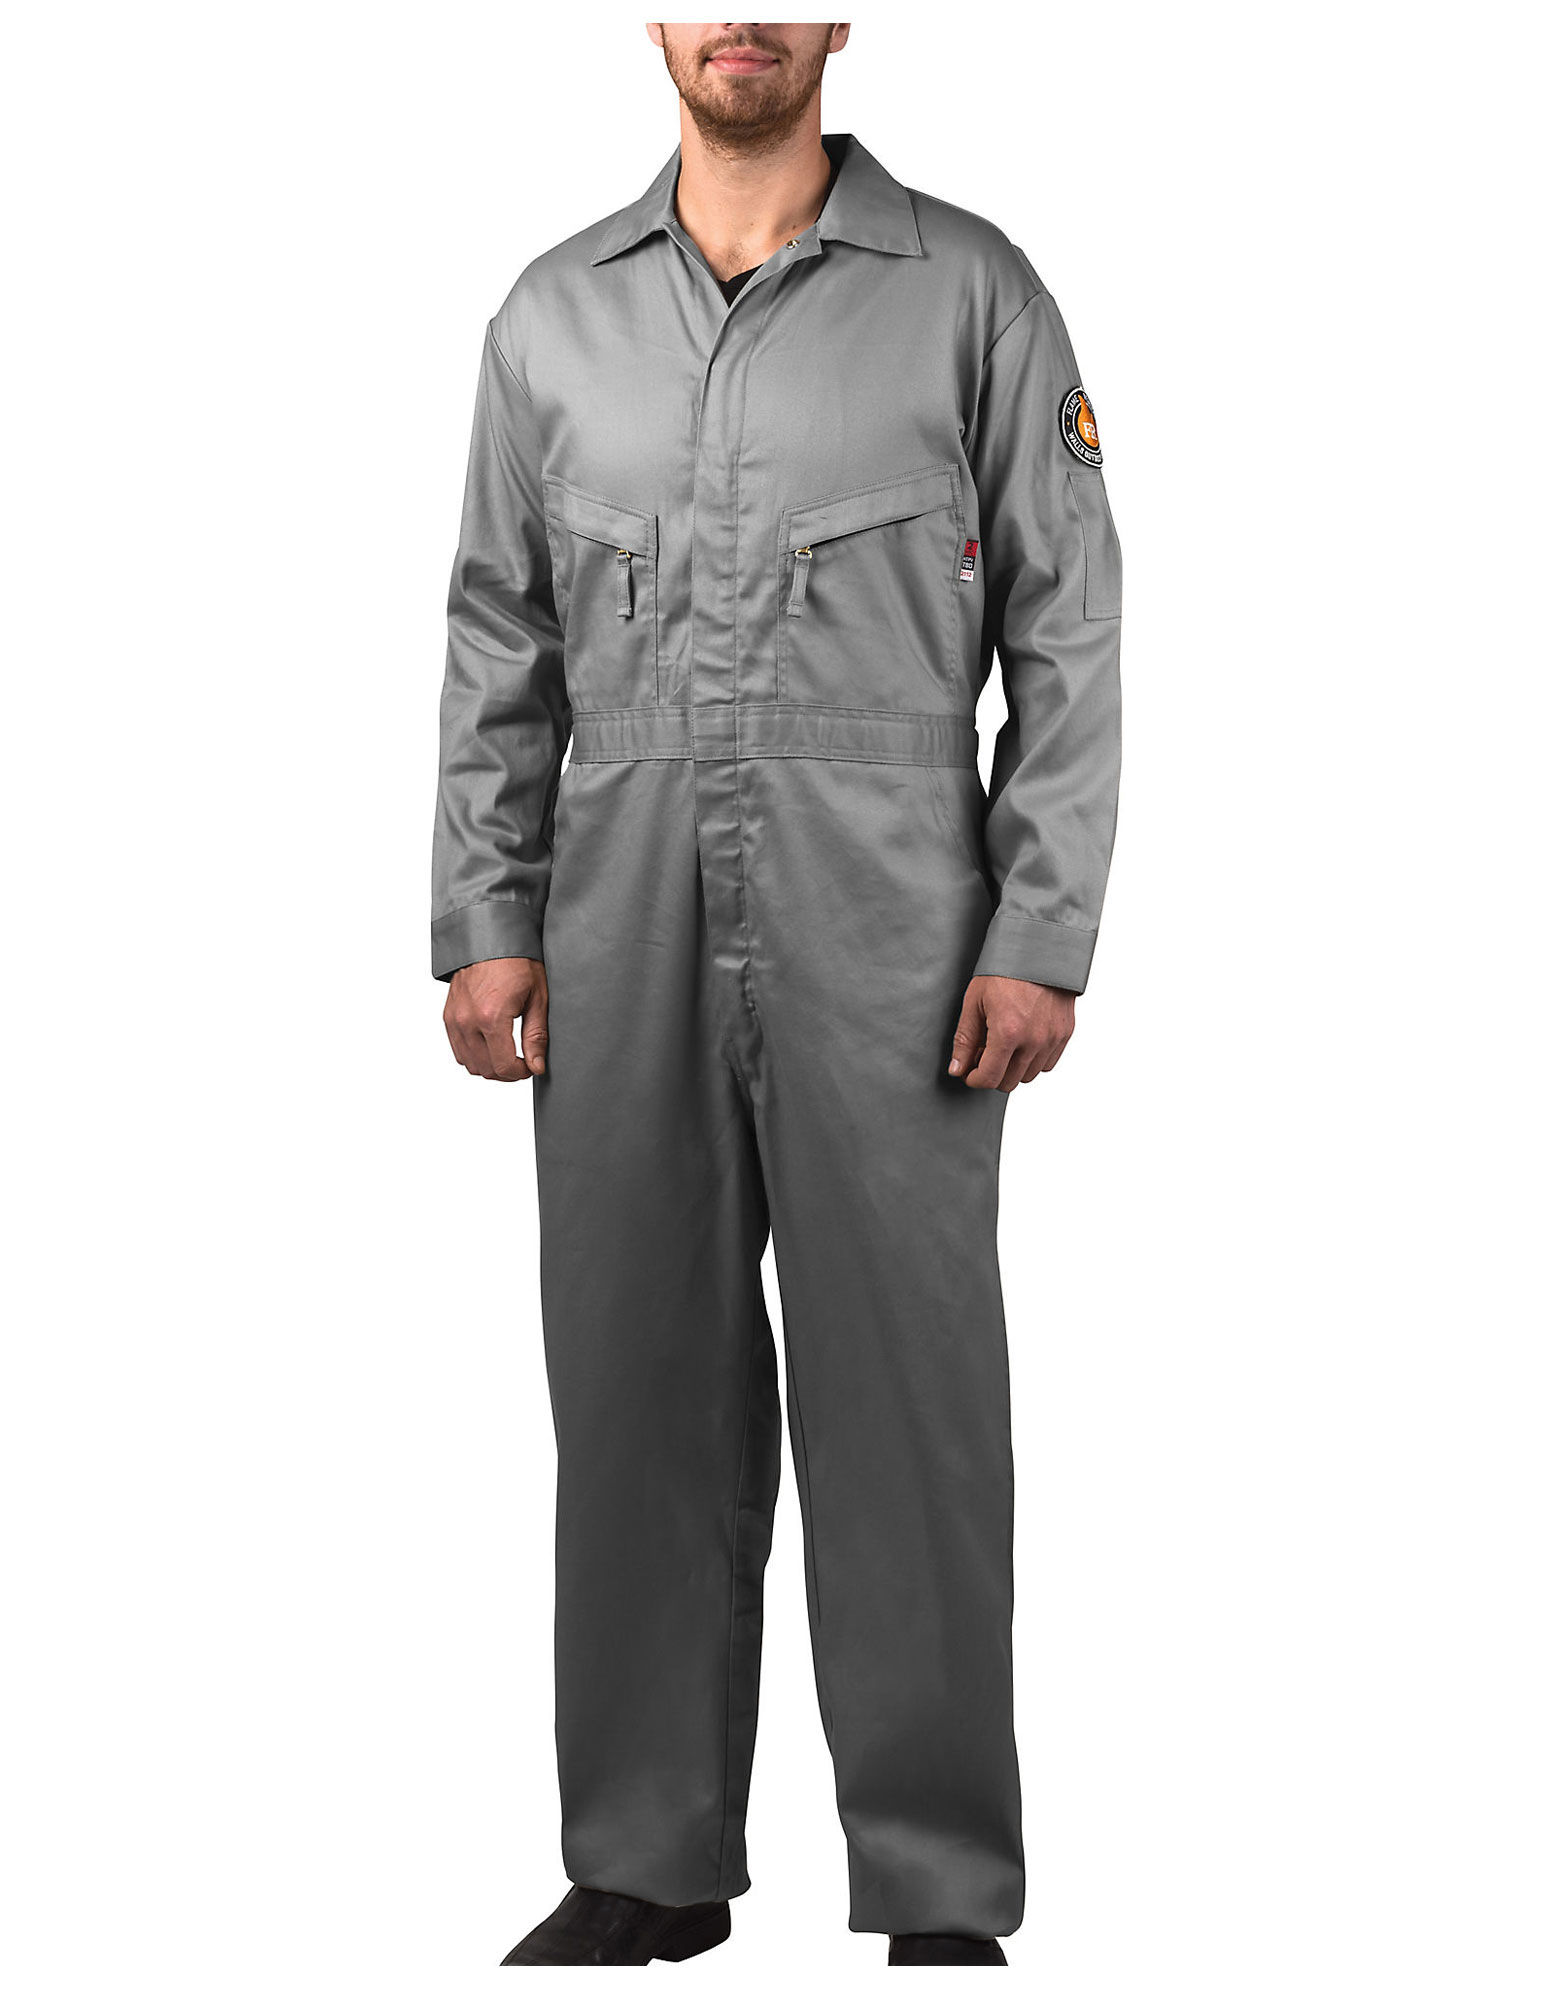 FR Vent Back Coverall